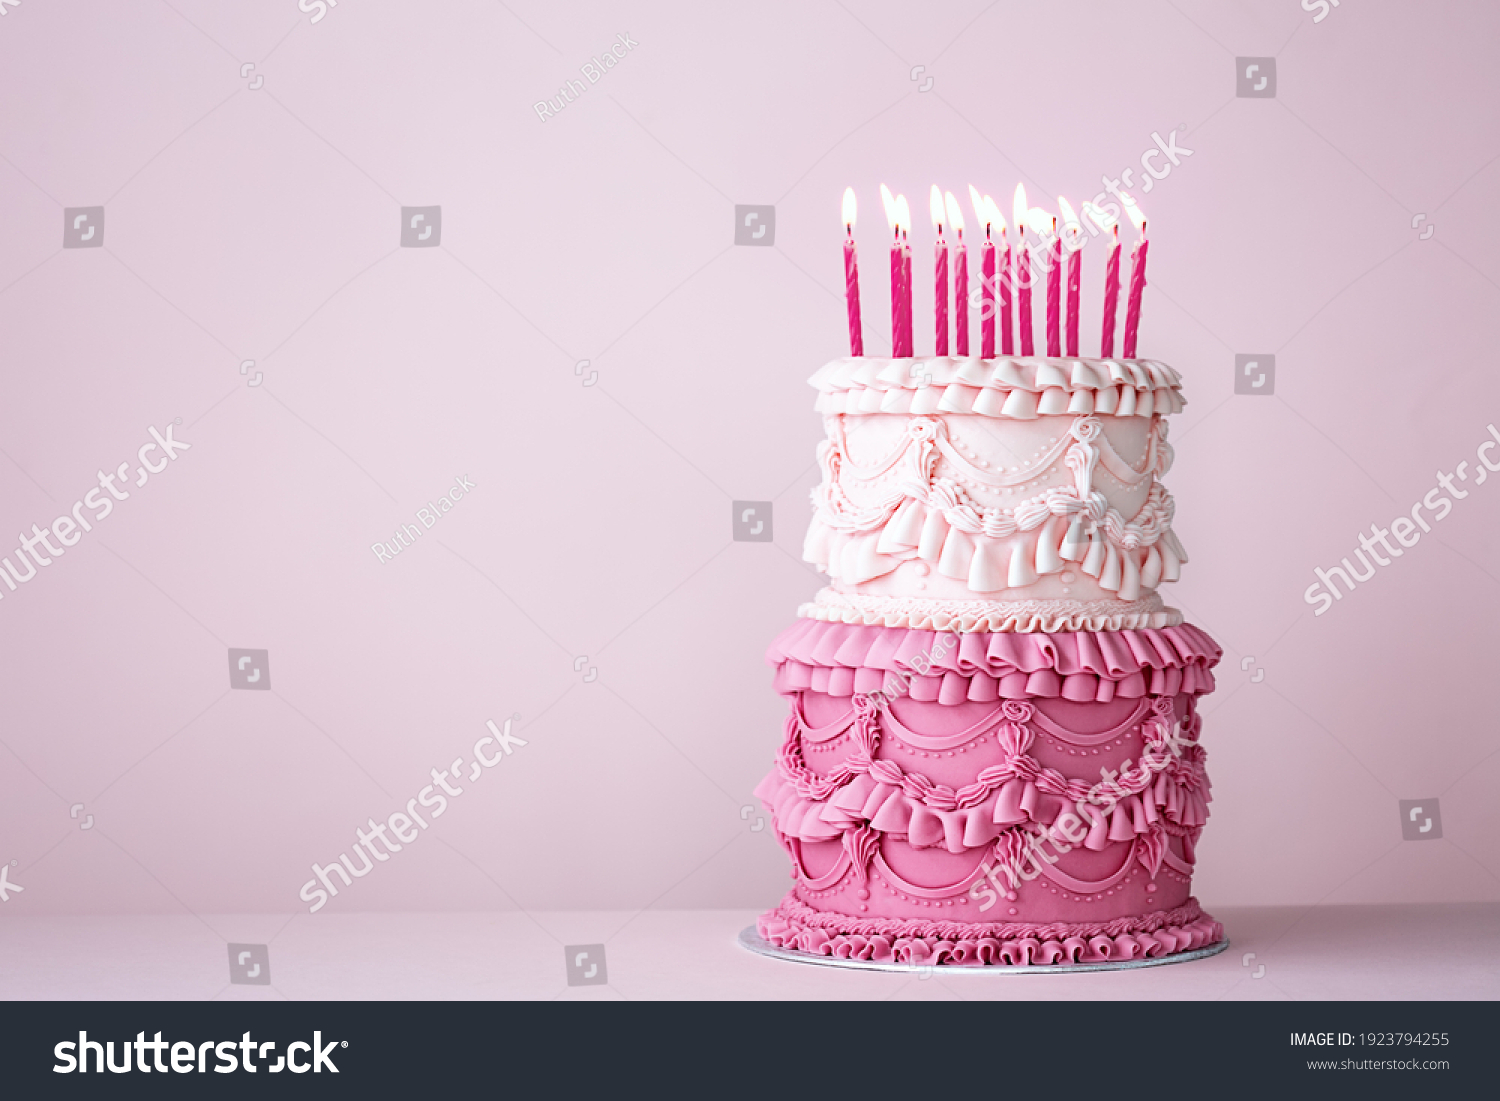 Ornate vintage buttercream birthday cake with buttercream ruffles and frills #1923794255